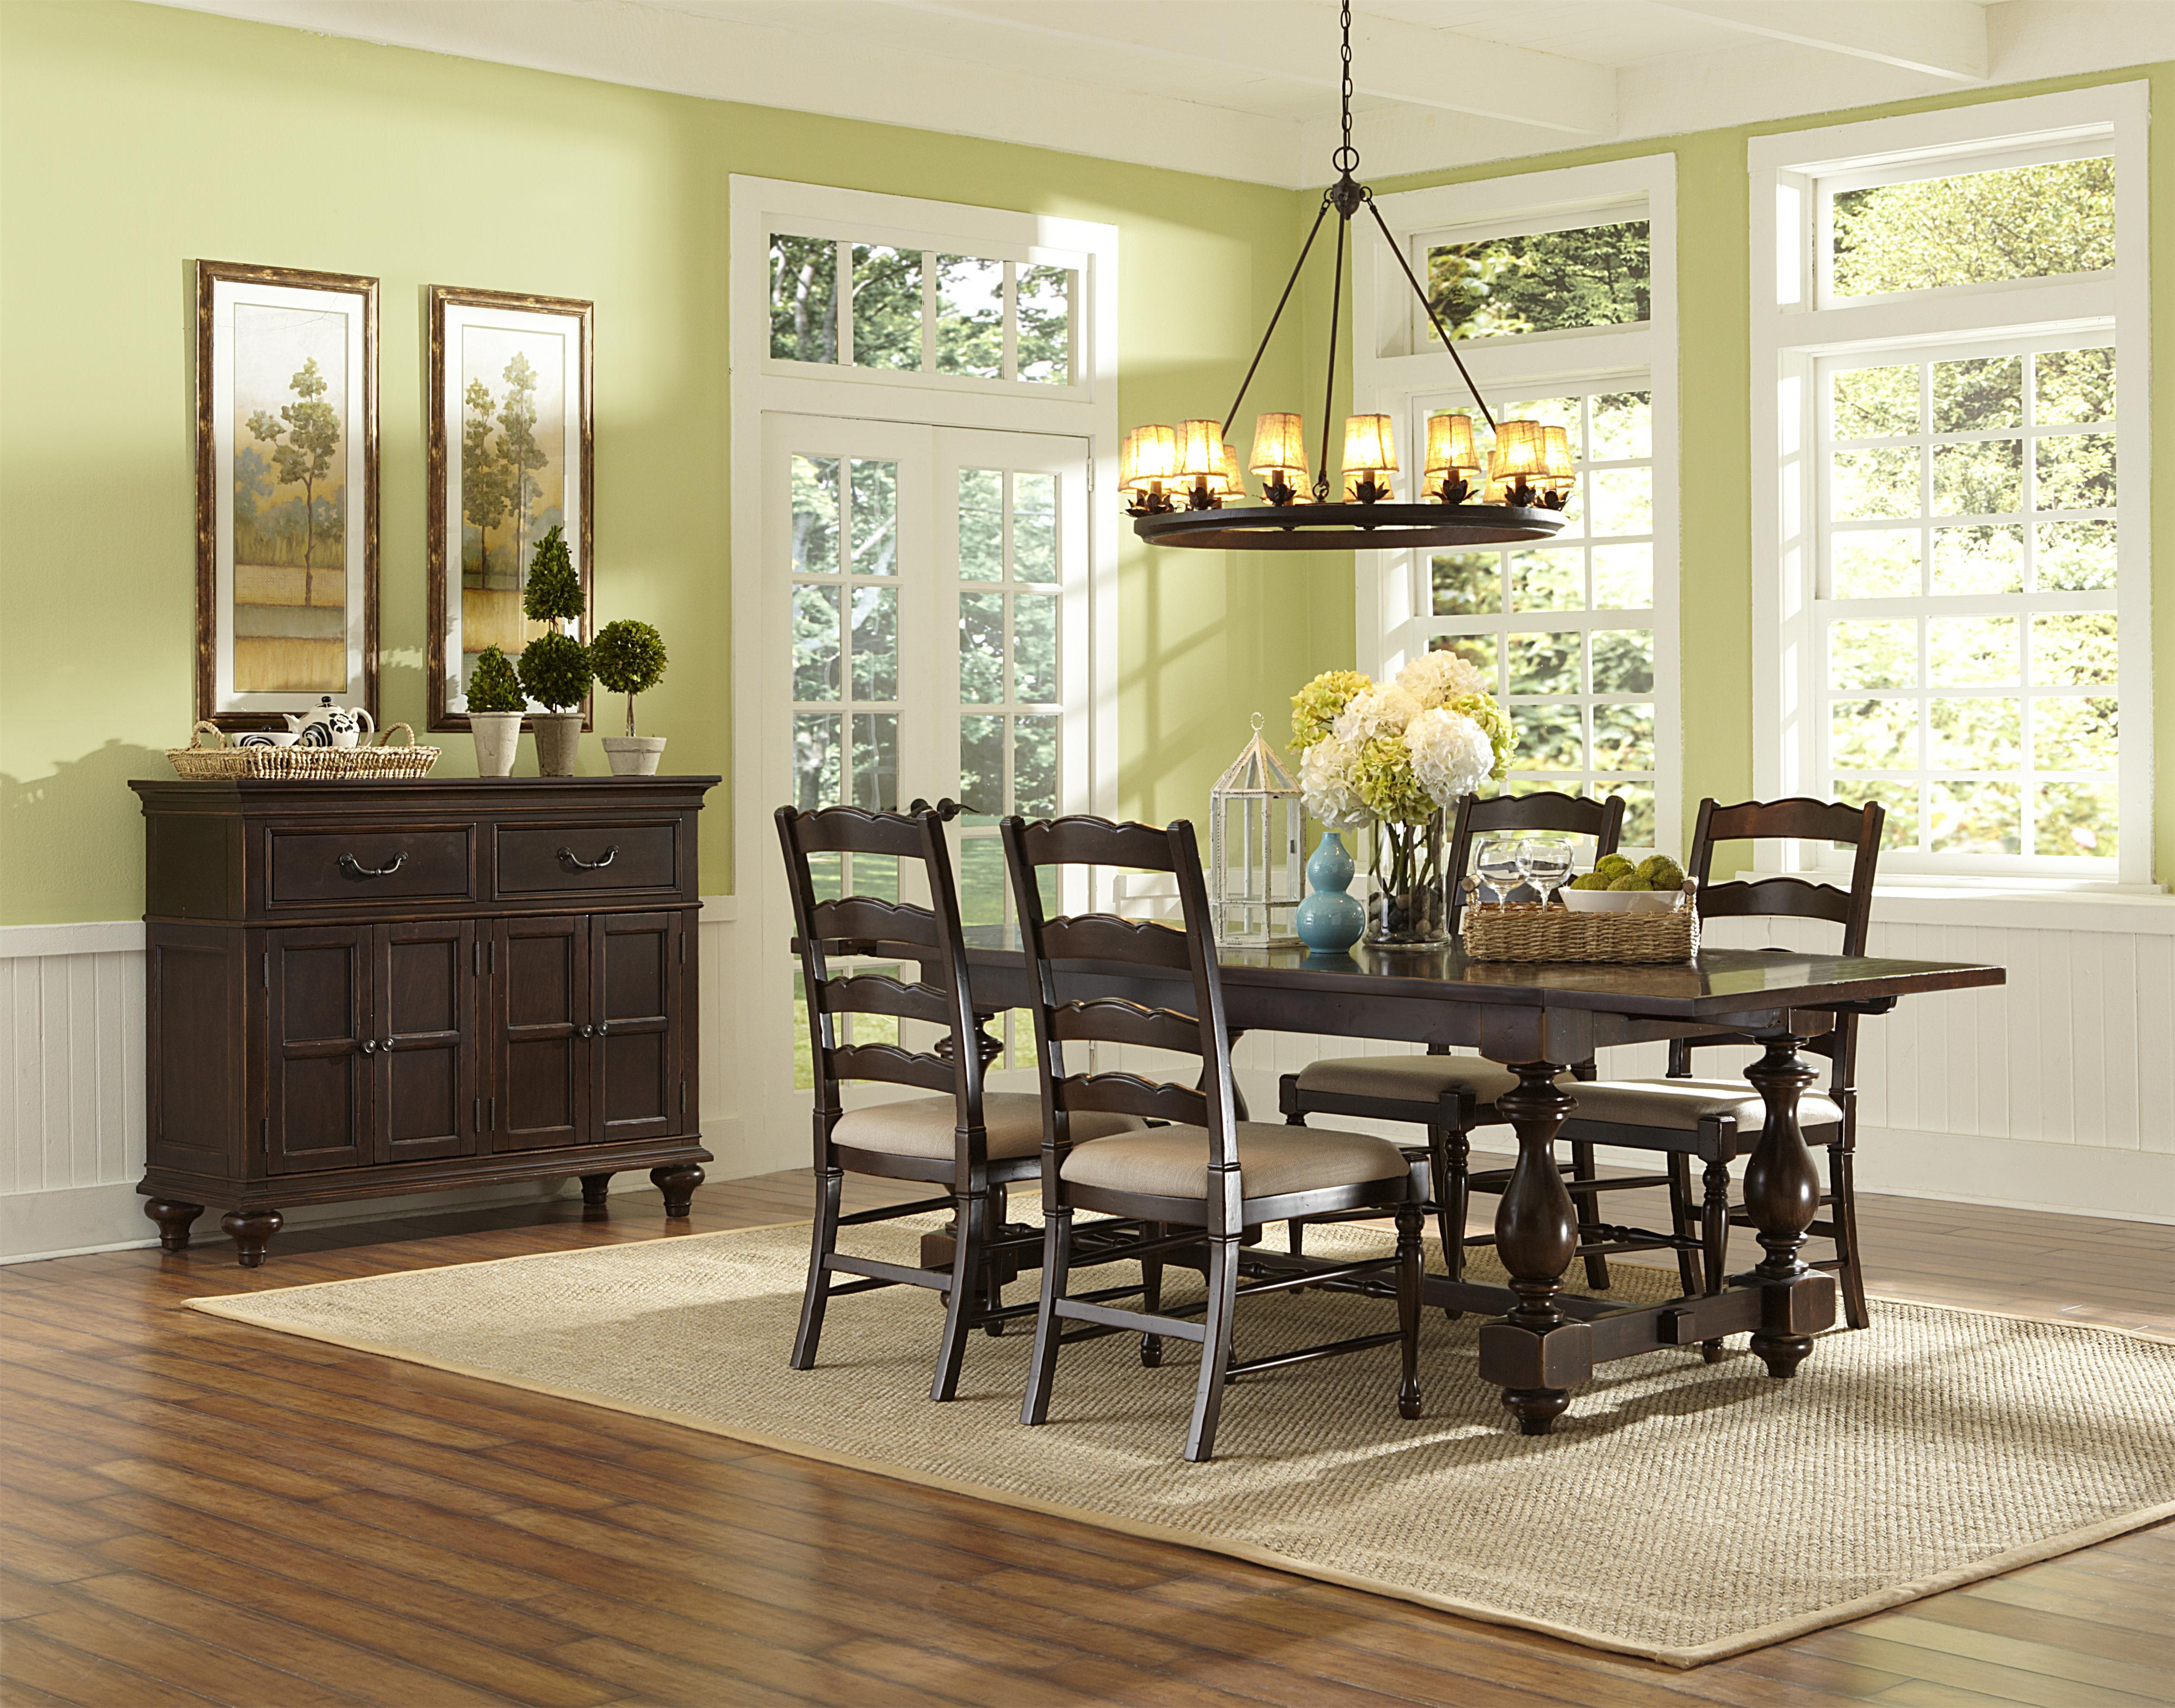 Magnussen Home  Loren Casual Dining Room Group - Item Number: D2470 Dining Room Group 2